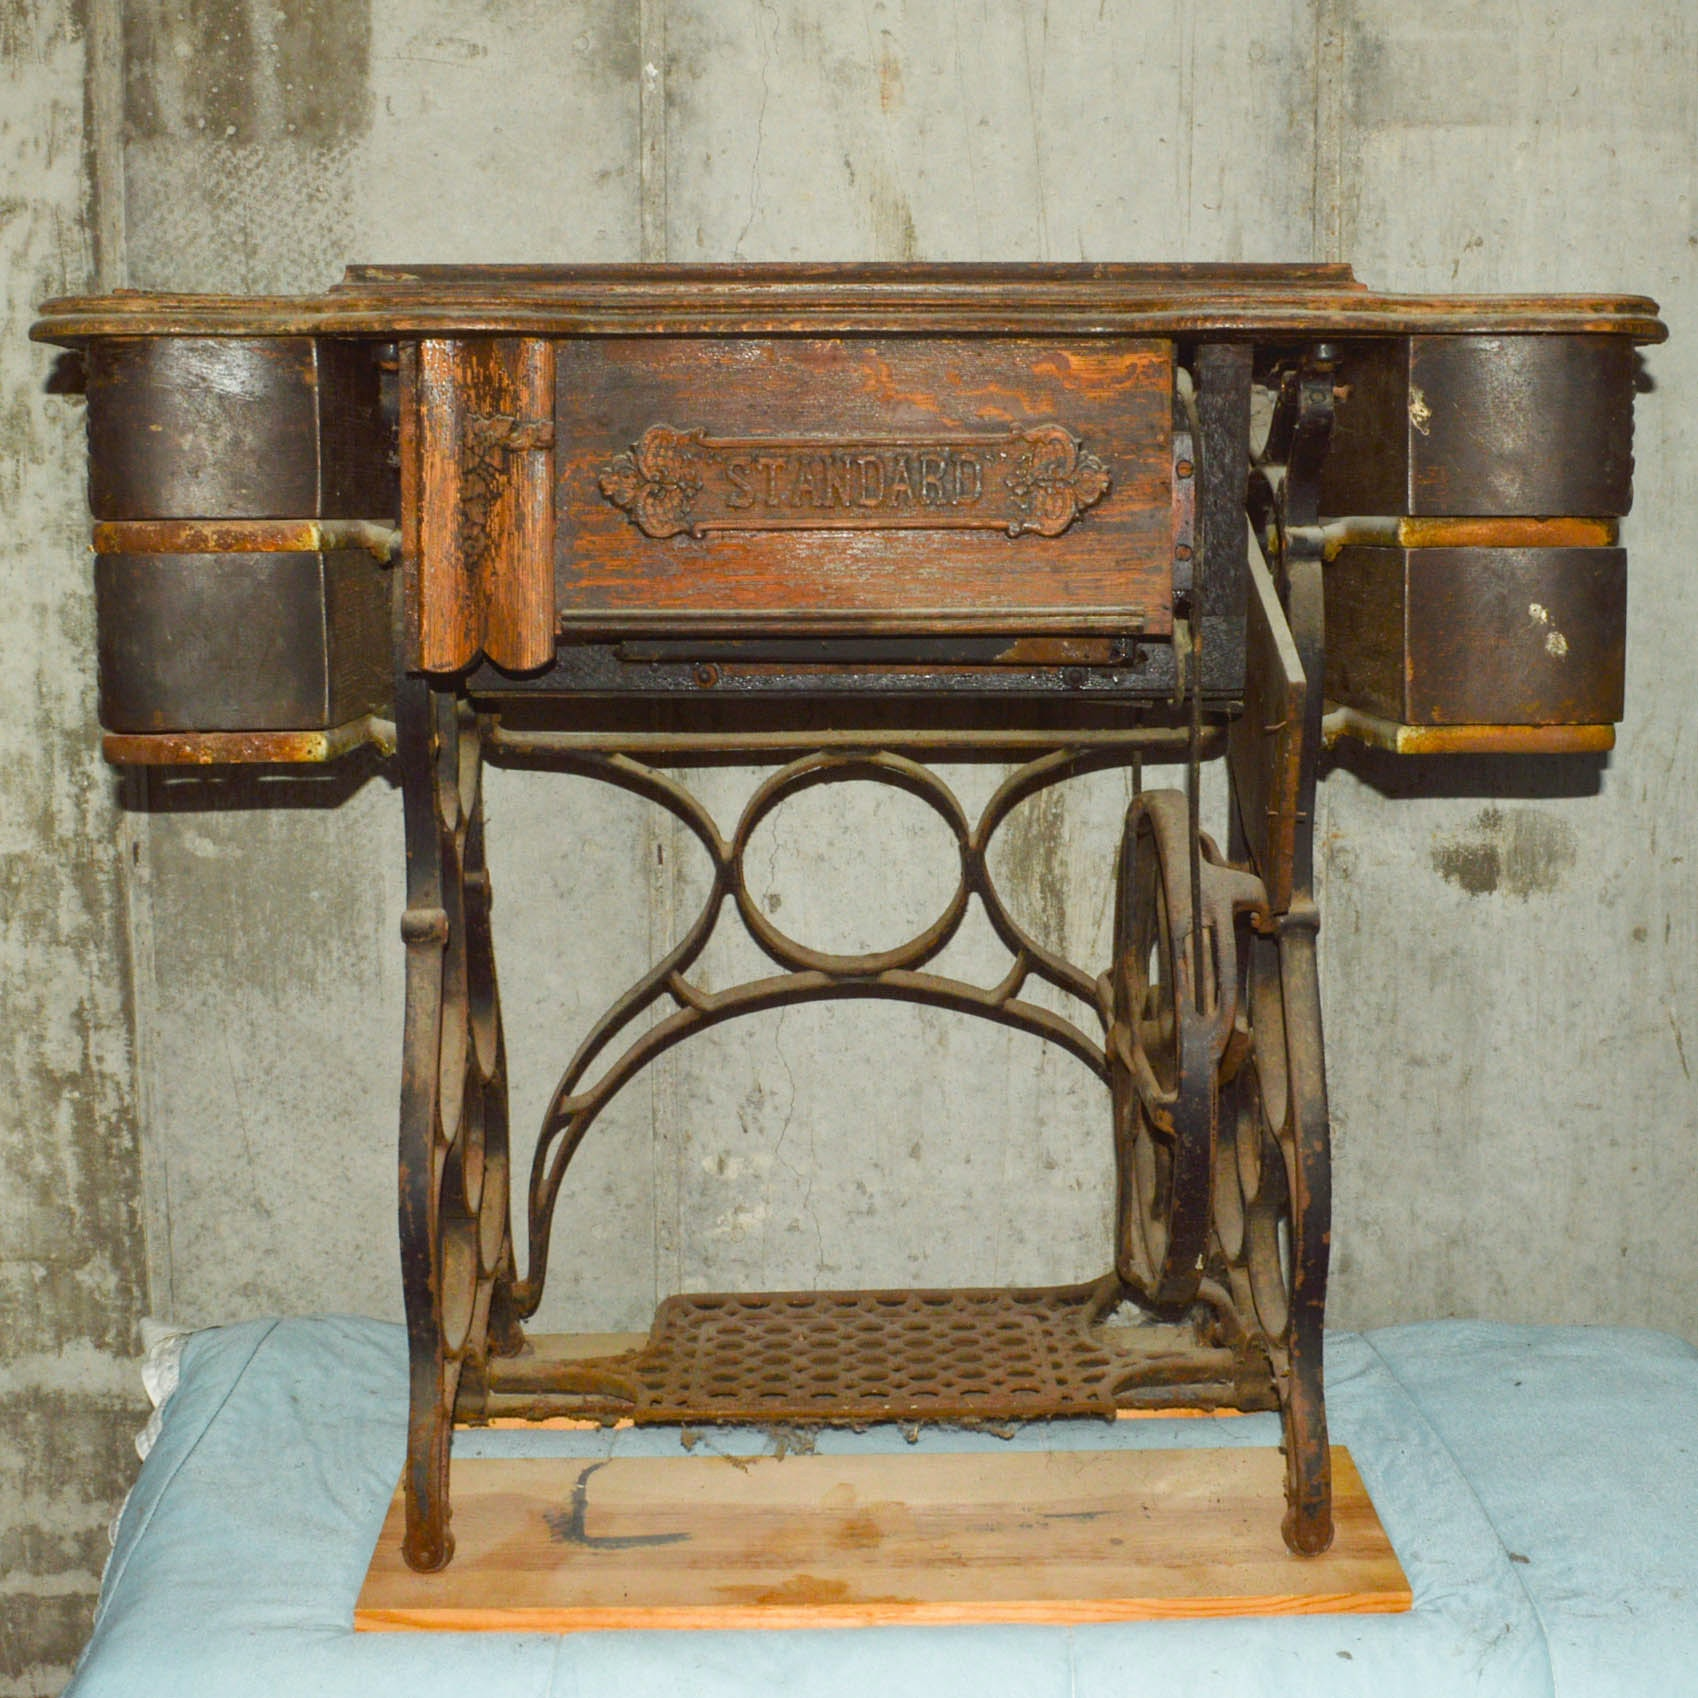 Antique Sewing Table With Cast Iron Base by Standard